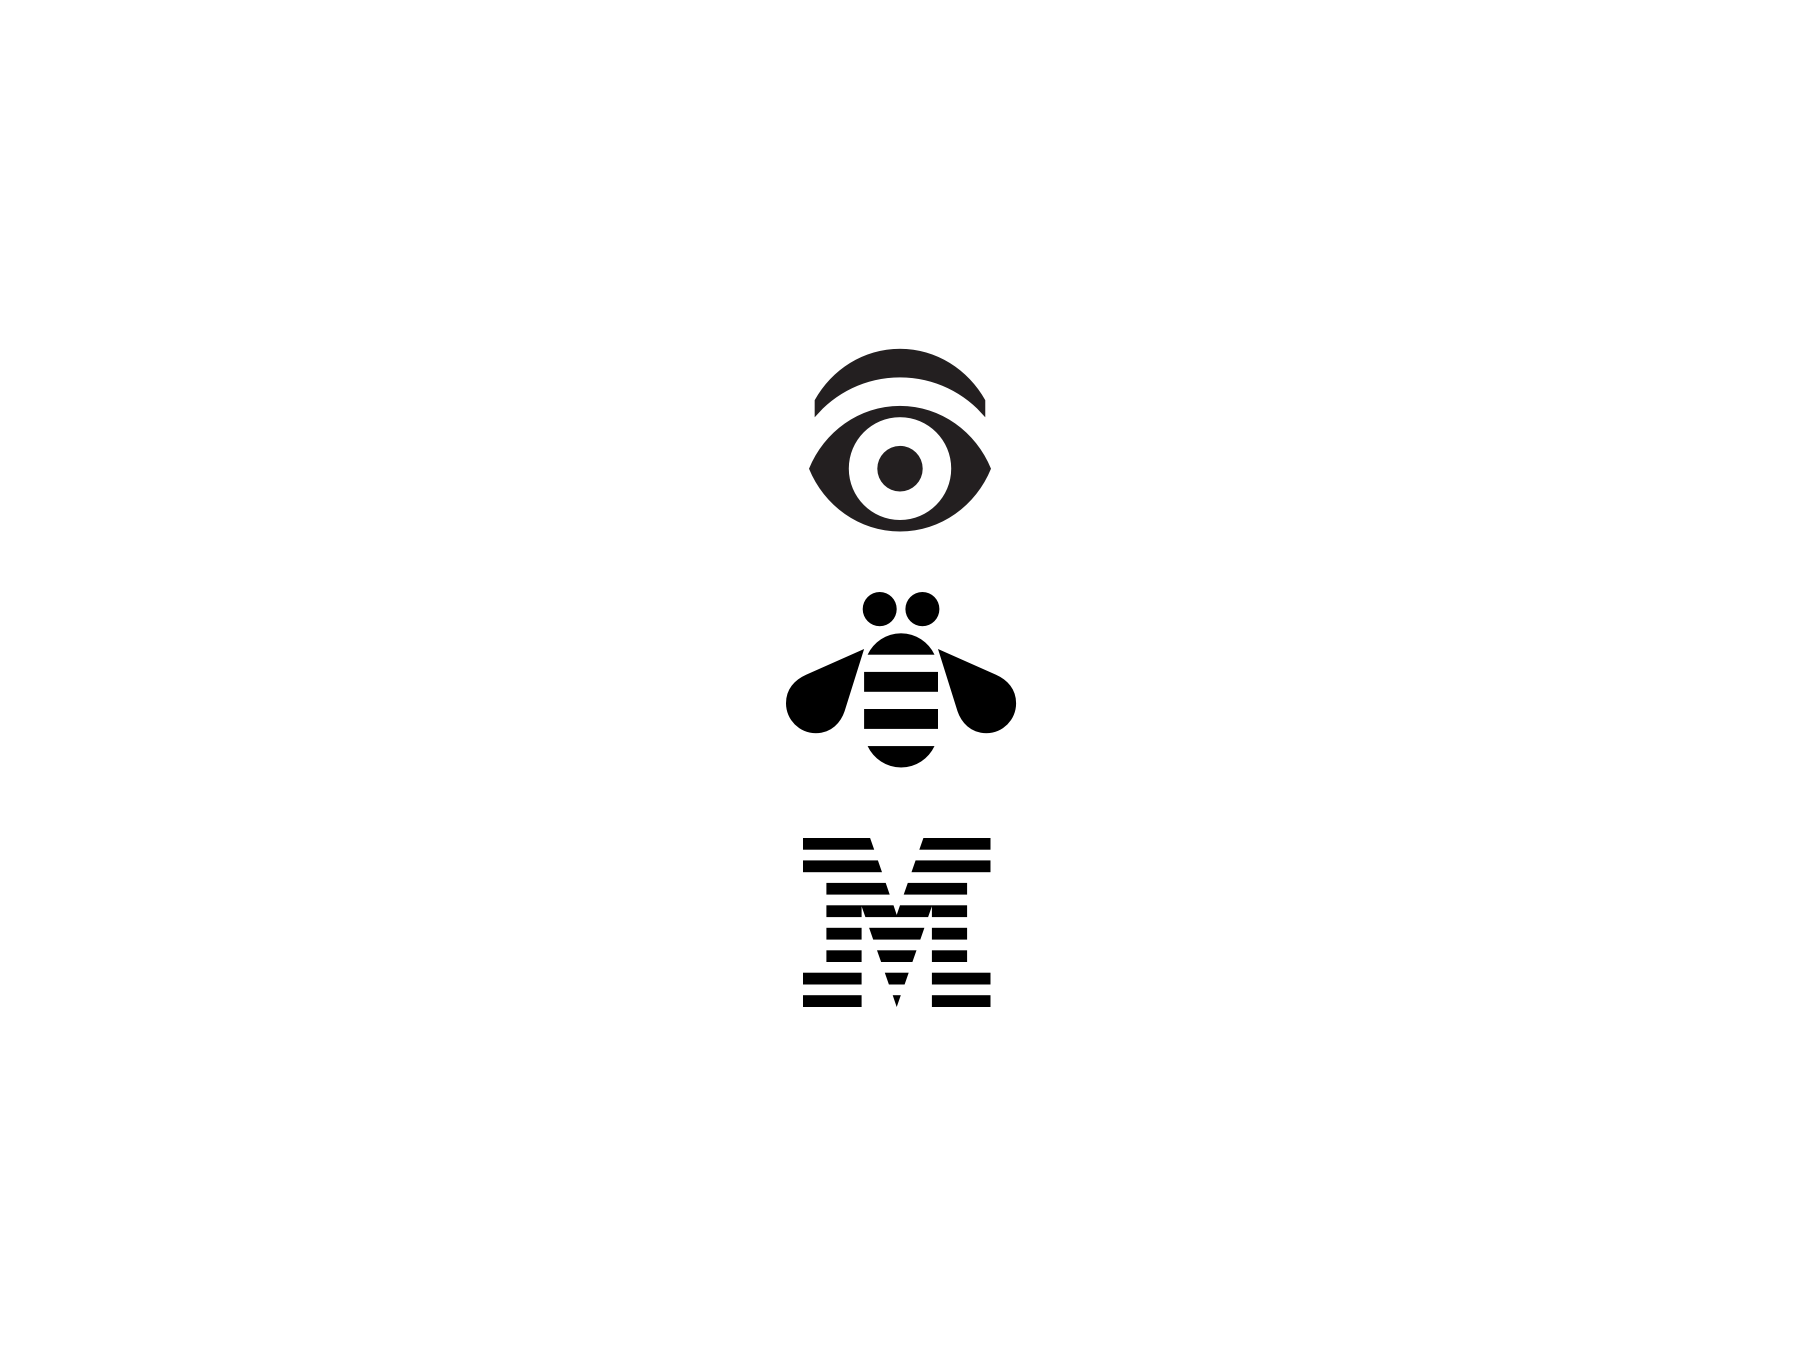 IBM - Eye Bee M